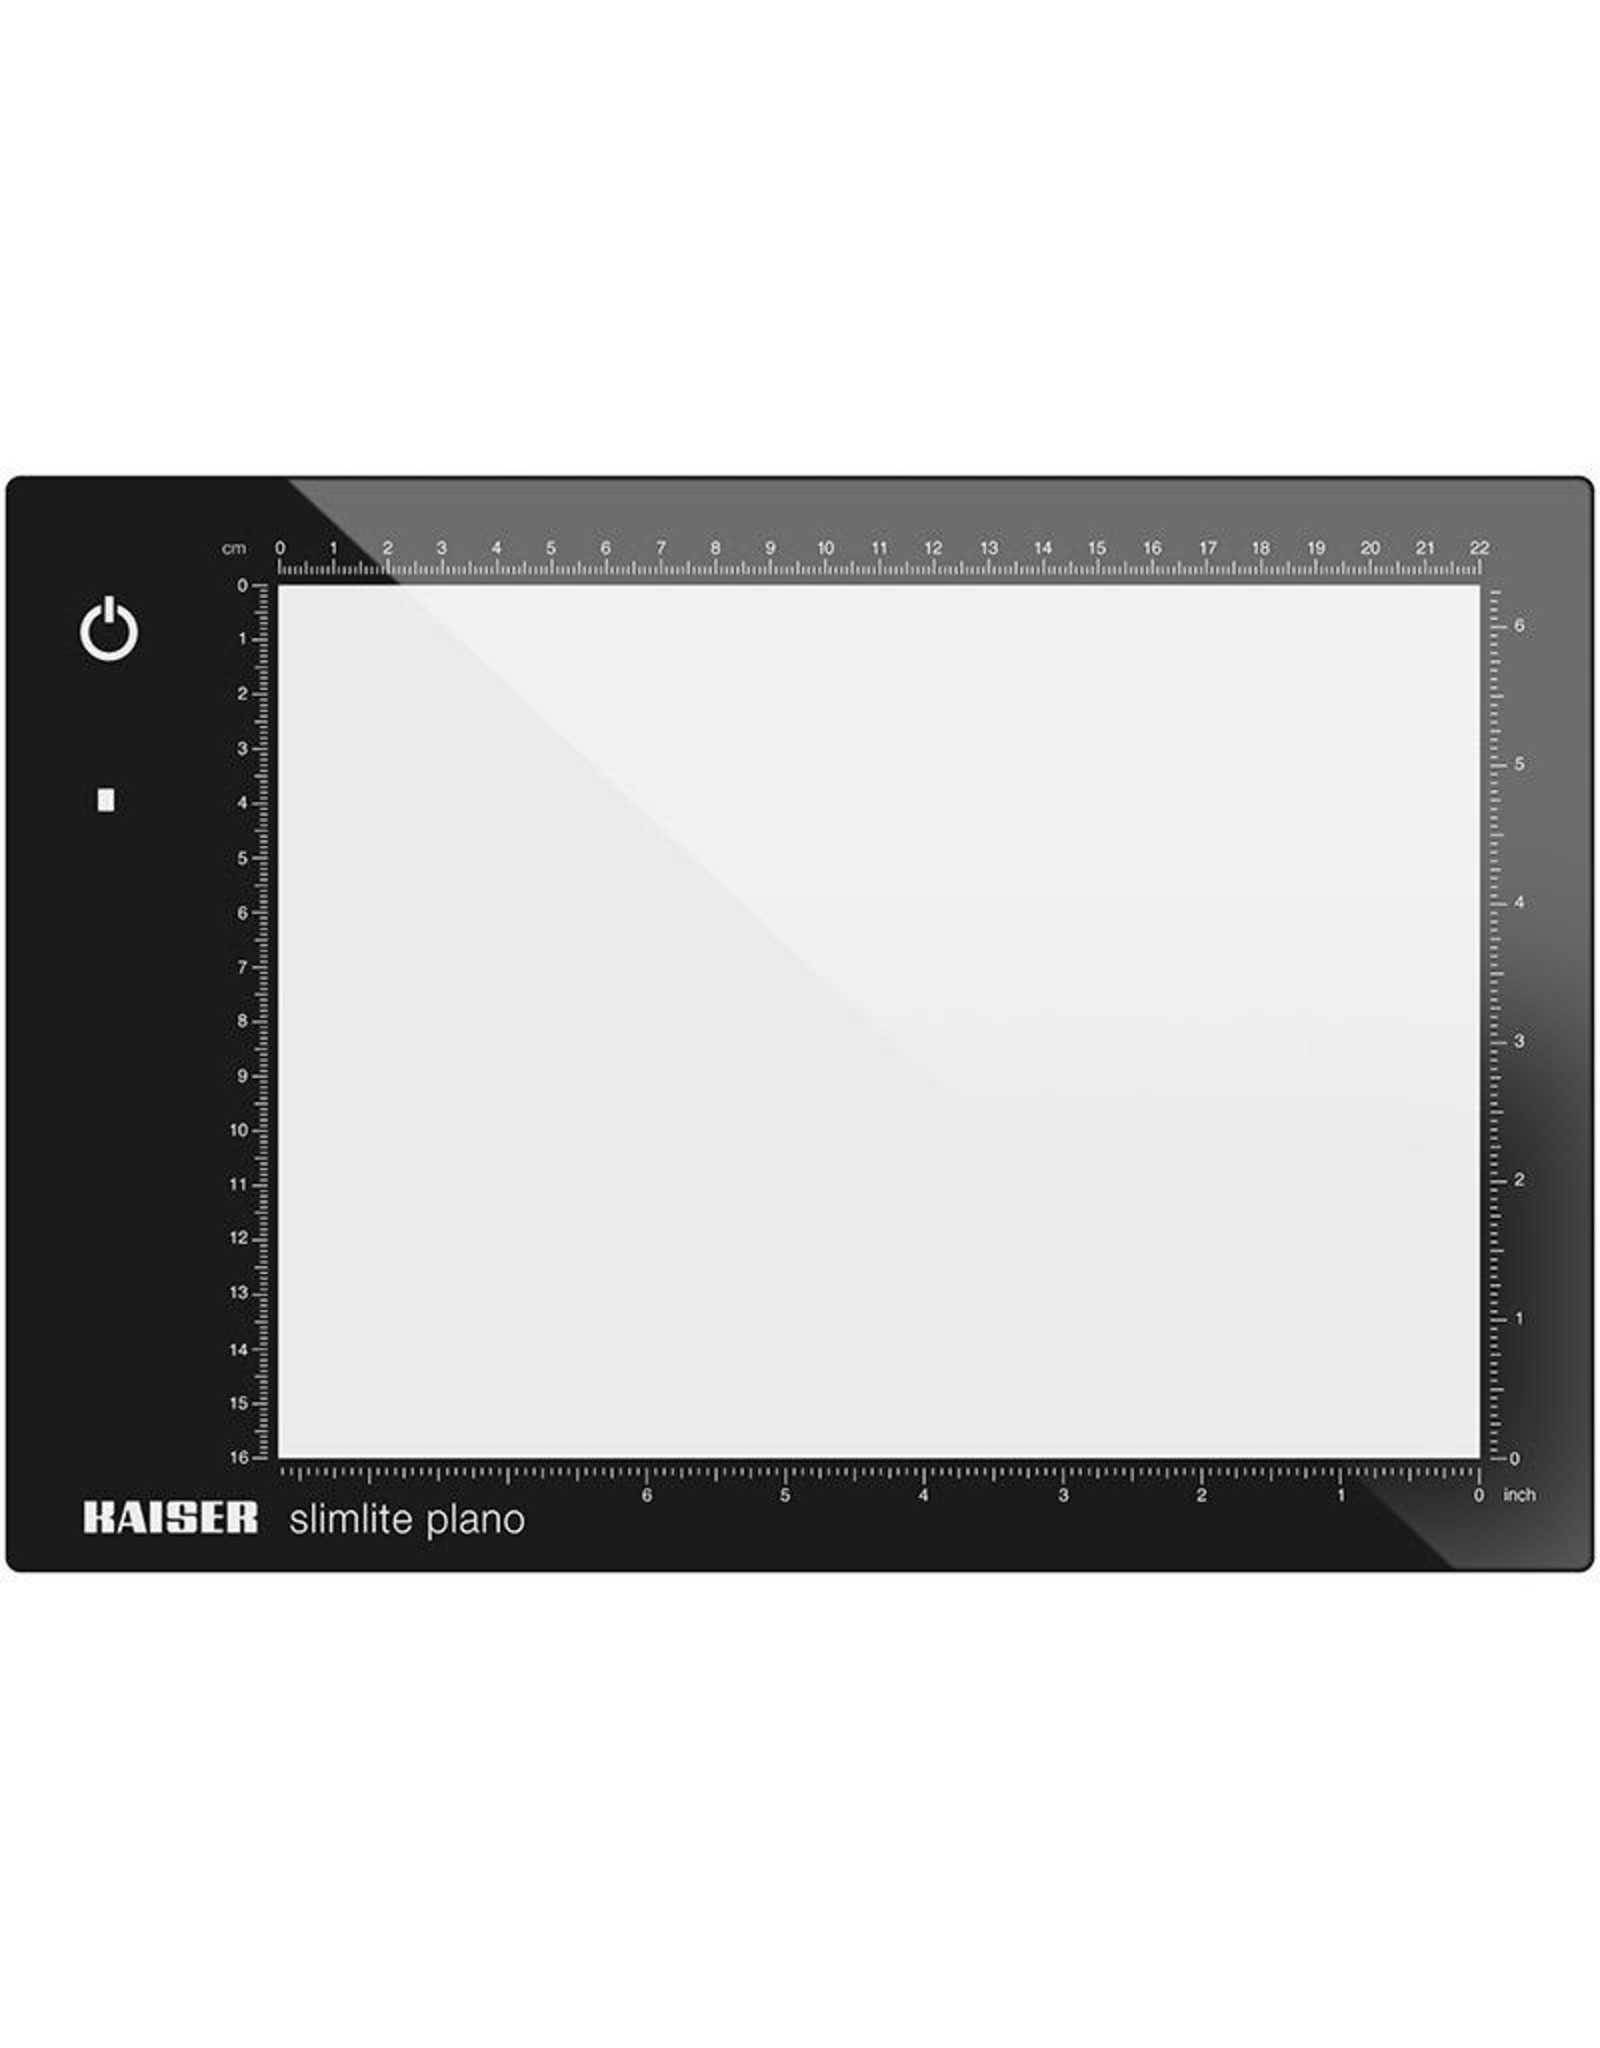 """Kaiser Kaiser """"slimlite plano"""" LED Light Box (Small), 5000 K,  dimmable, mains or battery operation, incl. mains adapter / charger, illuminated area 22 x 16 cm (8.7 x 6.3 in.) 100 - 120 V / 60 Hz, US-Plug"""